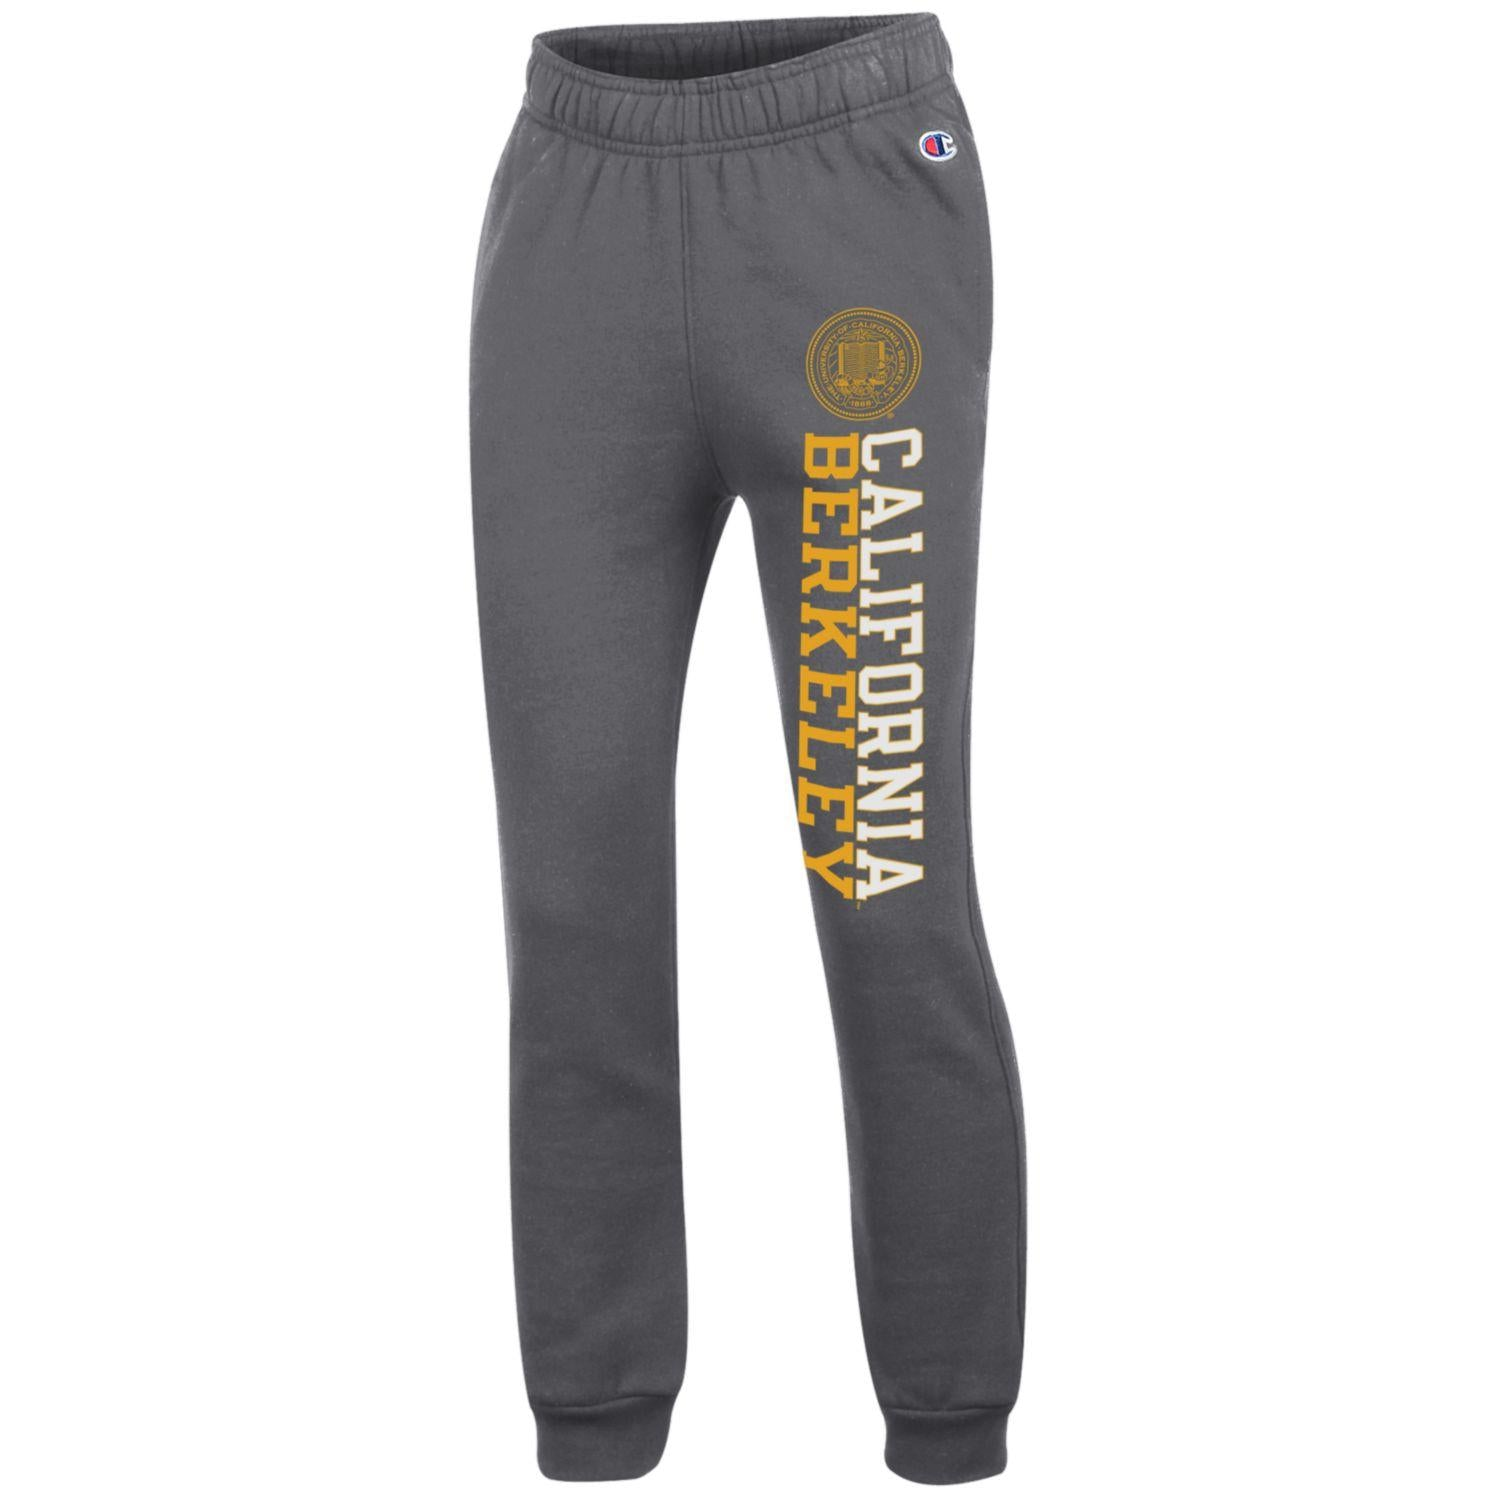 hottest sale top style Official Website University of California Berkeley Youth Jogger pants-Charcoal